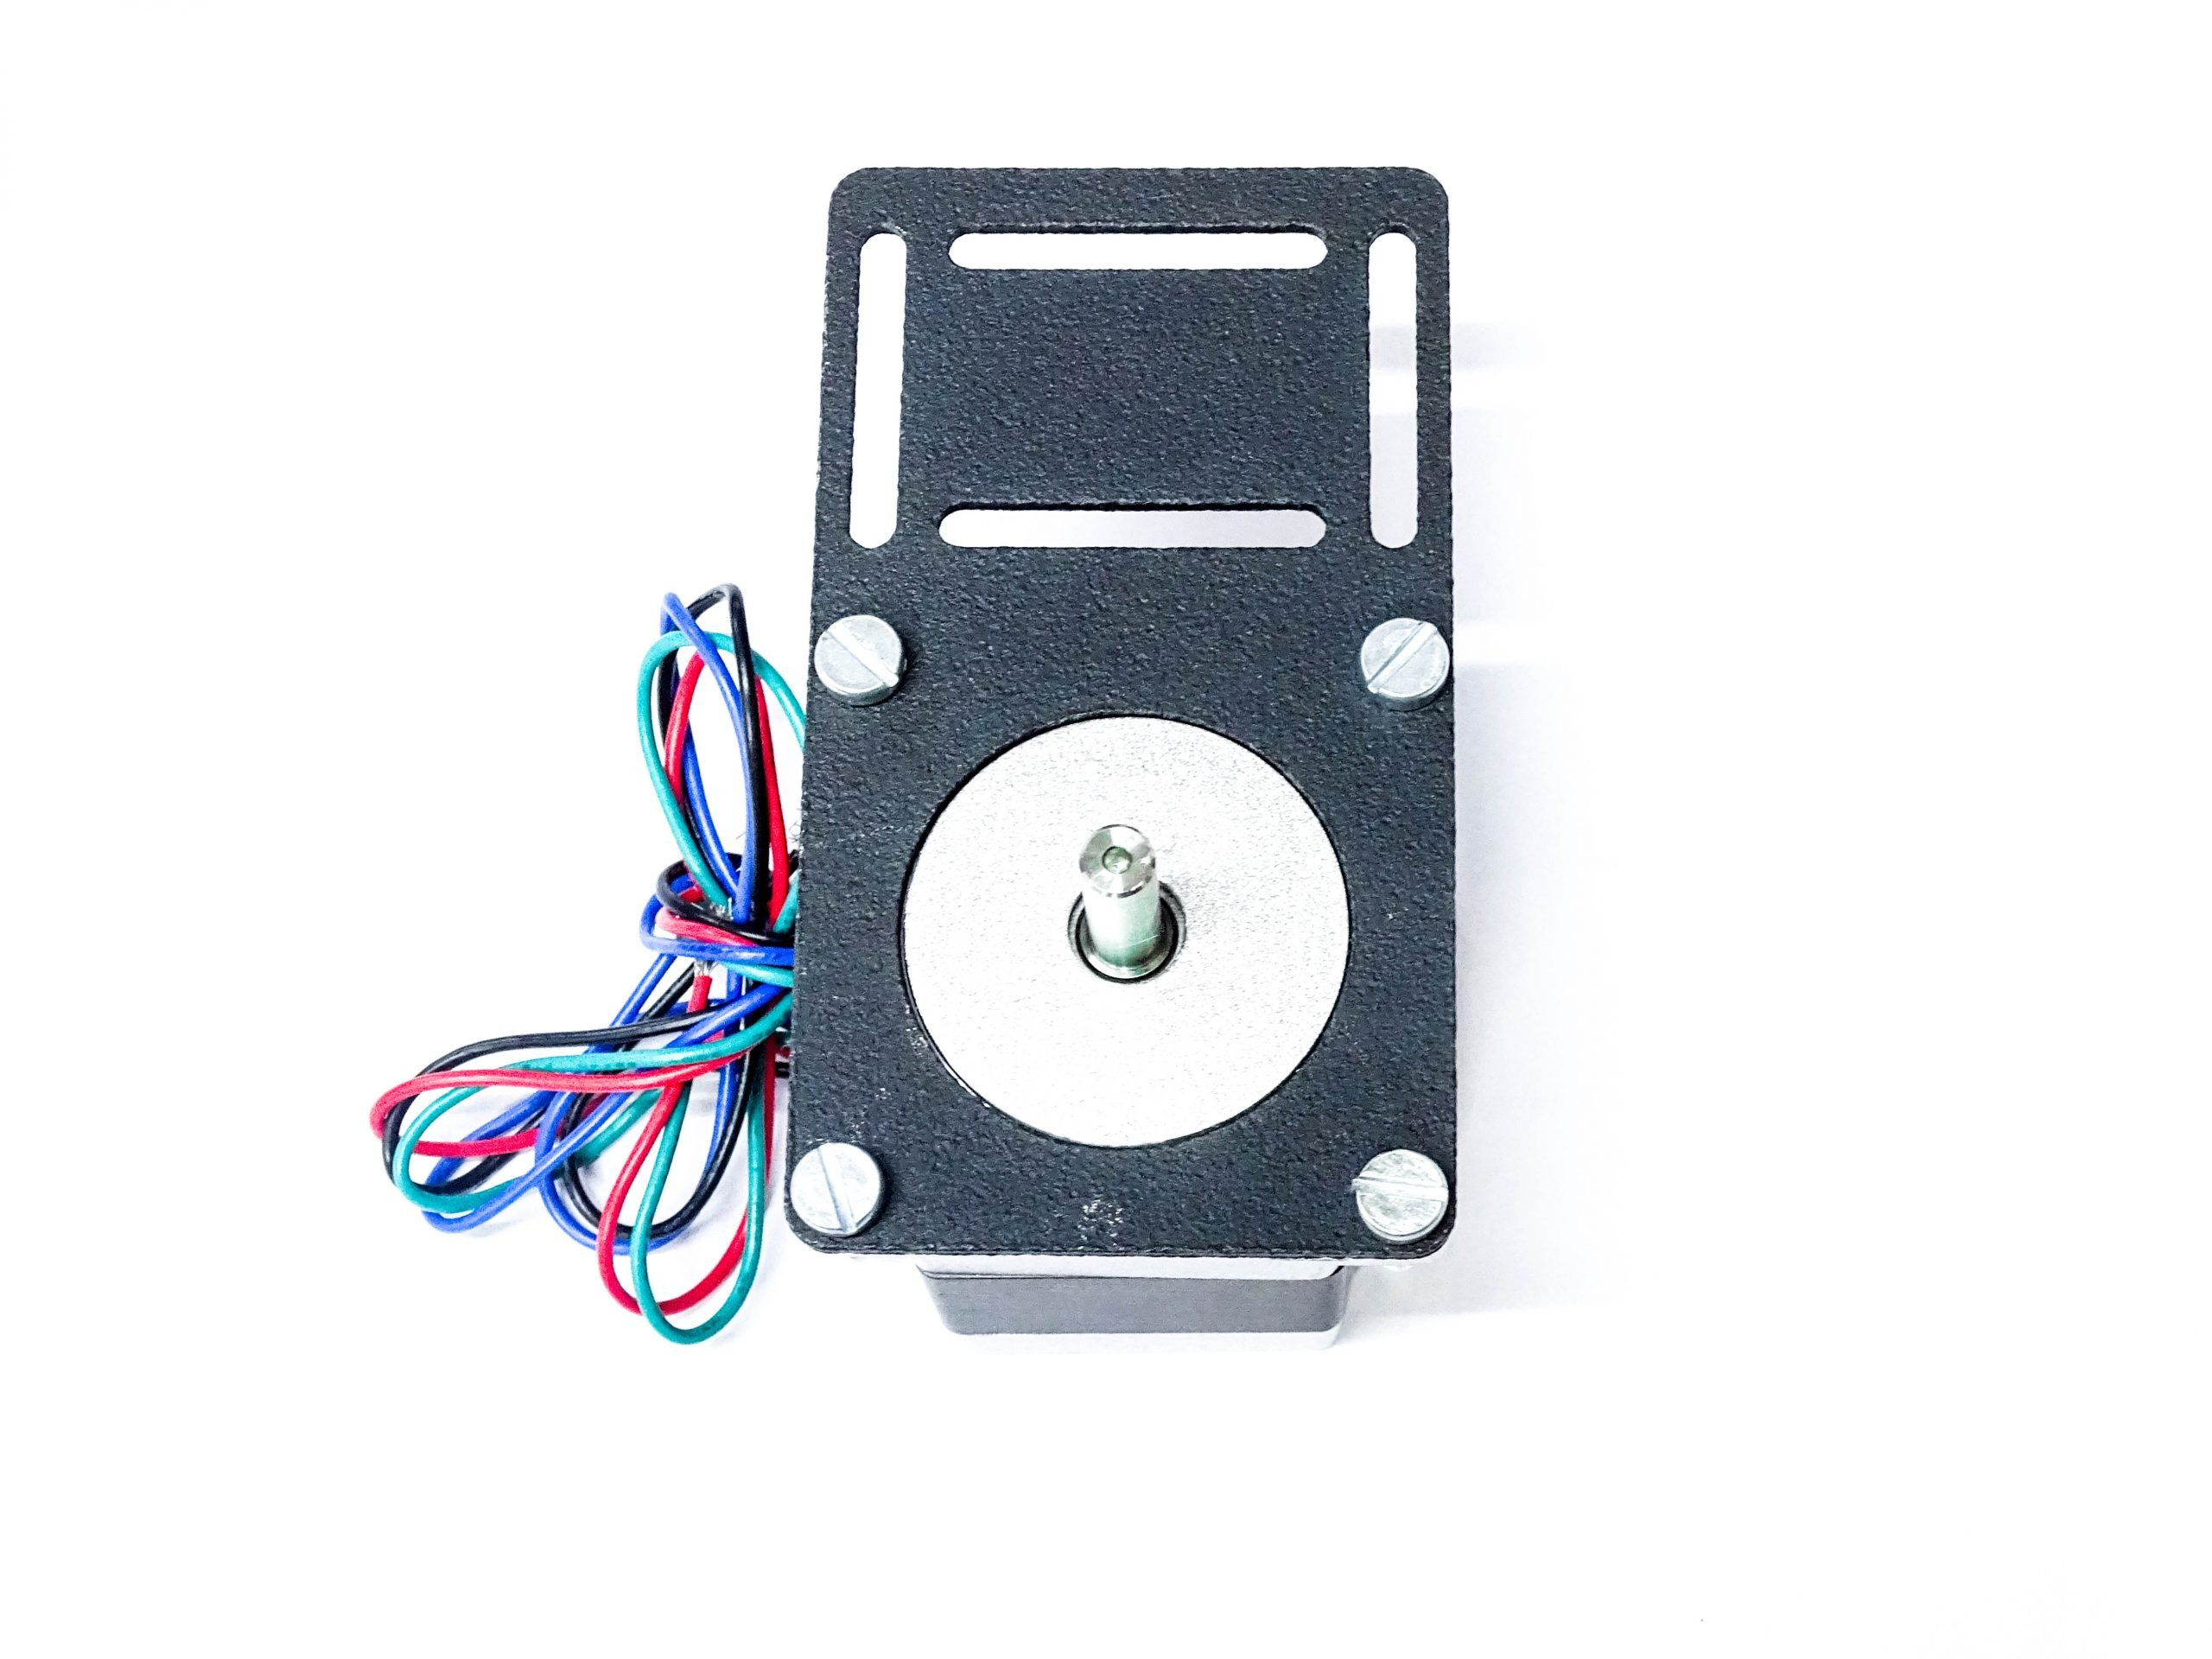 EasyMech Bracket For NEMA23 Stepper Motor - StraightEasyMech Bracket For NEMA23 Stepper Motor - Straight